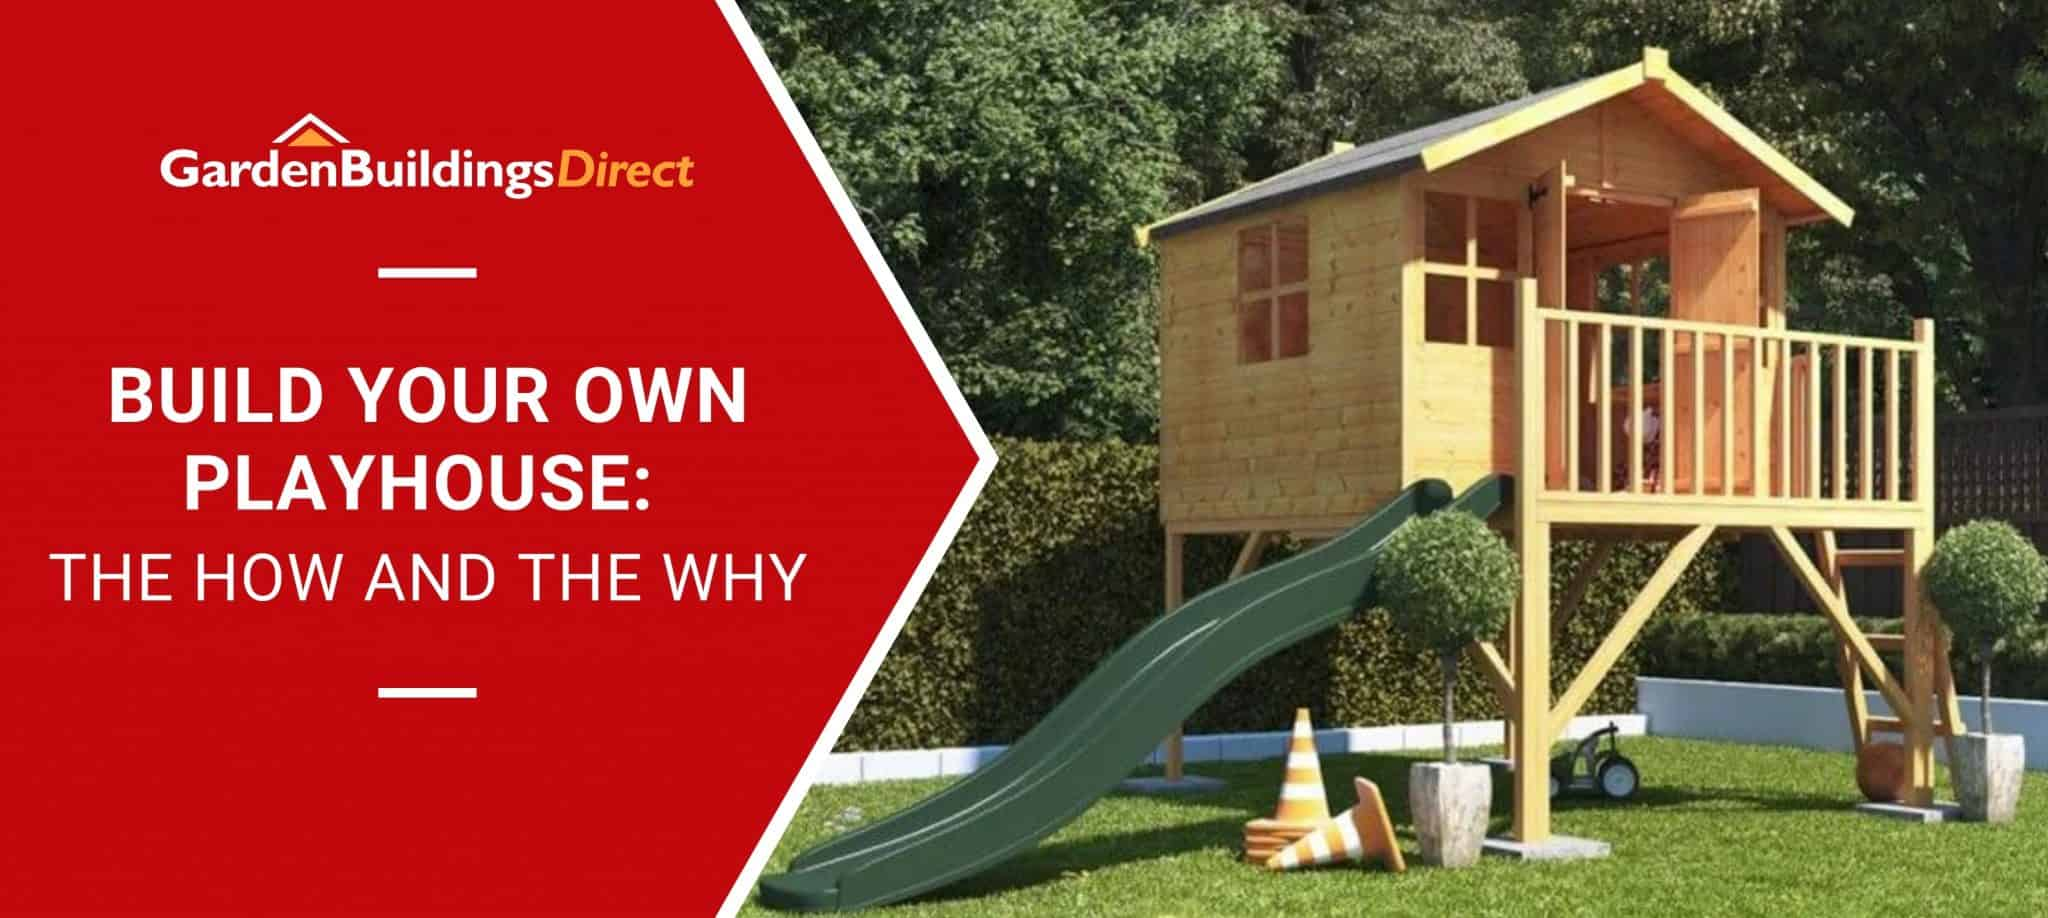 BillyOh Lollipop Junior Tower Playhouse with slide with 'Build Your Own Playhouse' banner on red arrow with Garden Buildings Direct Logo